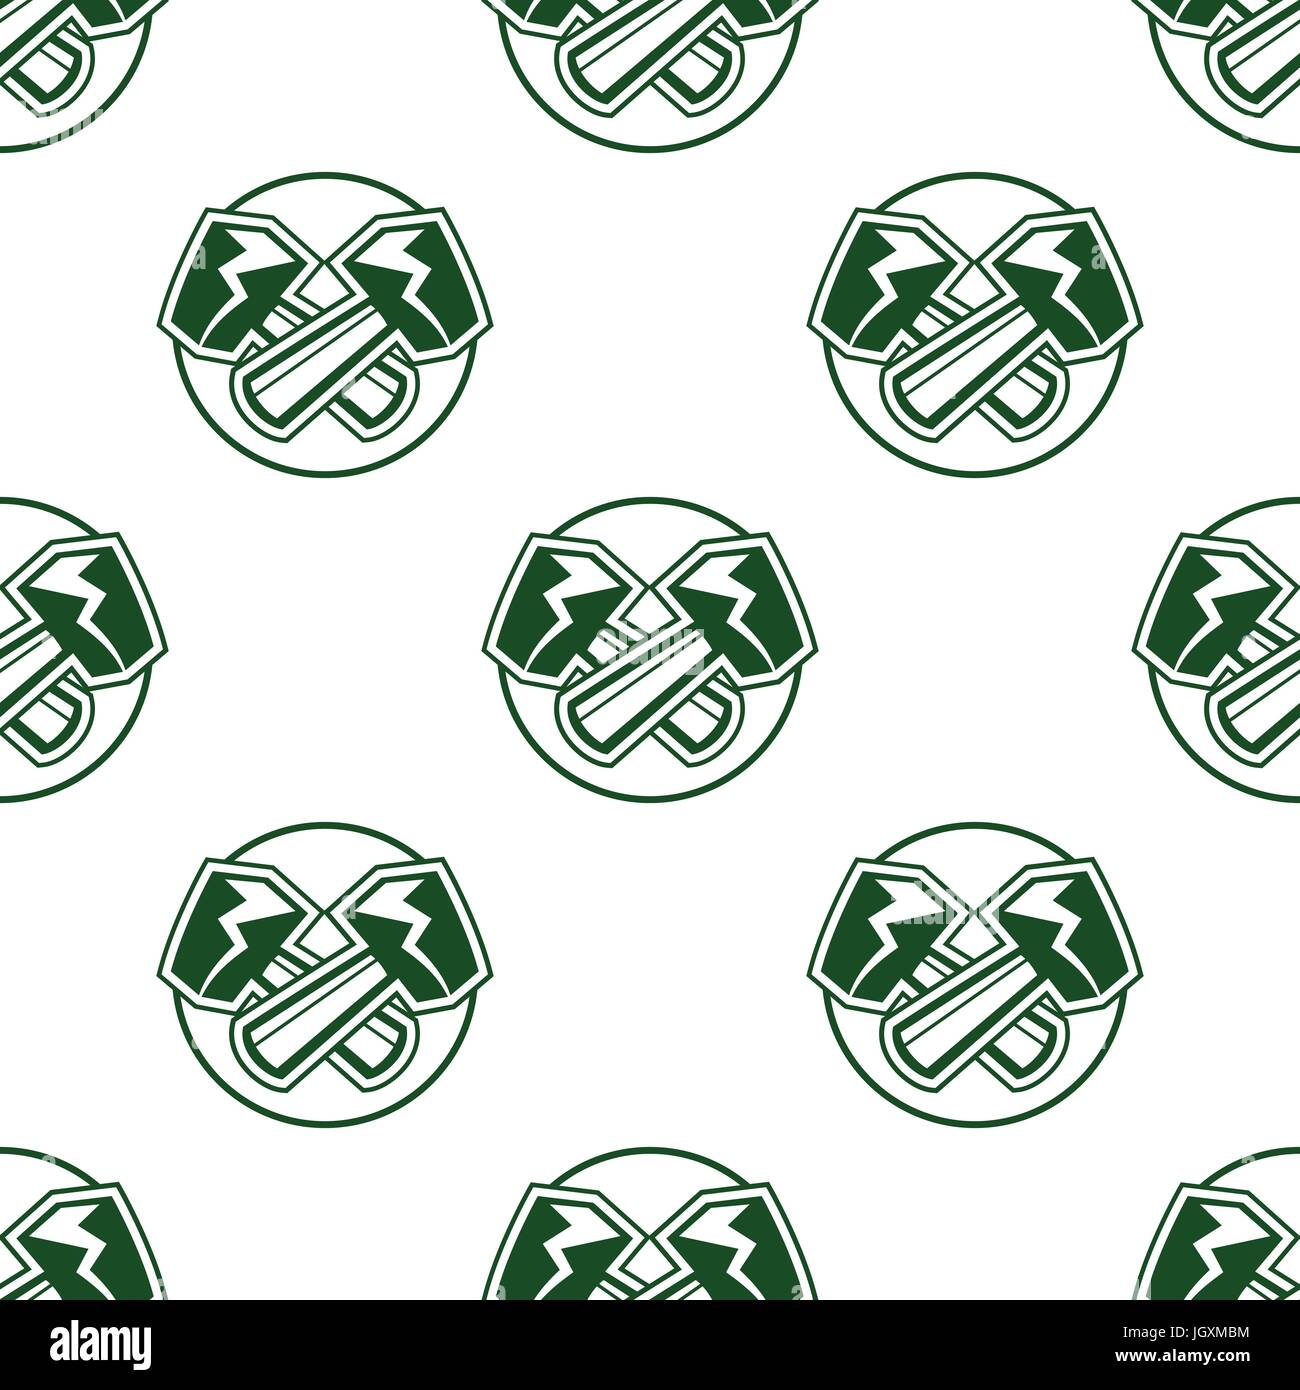 Hammers seamless pattern background, wallpaper. Football sports label style. Stock vector isolated on white - Stock Vector